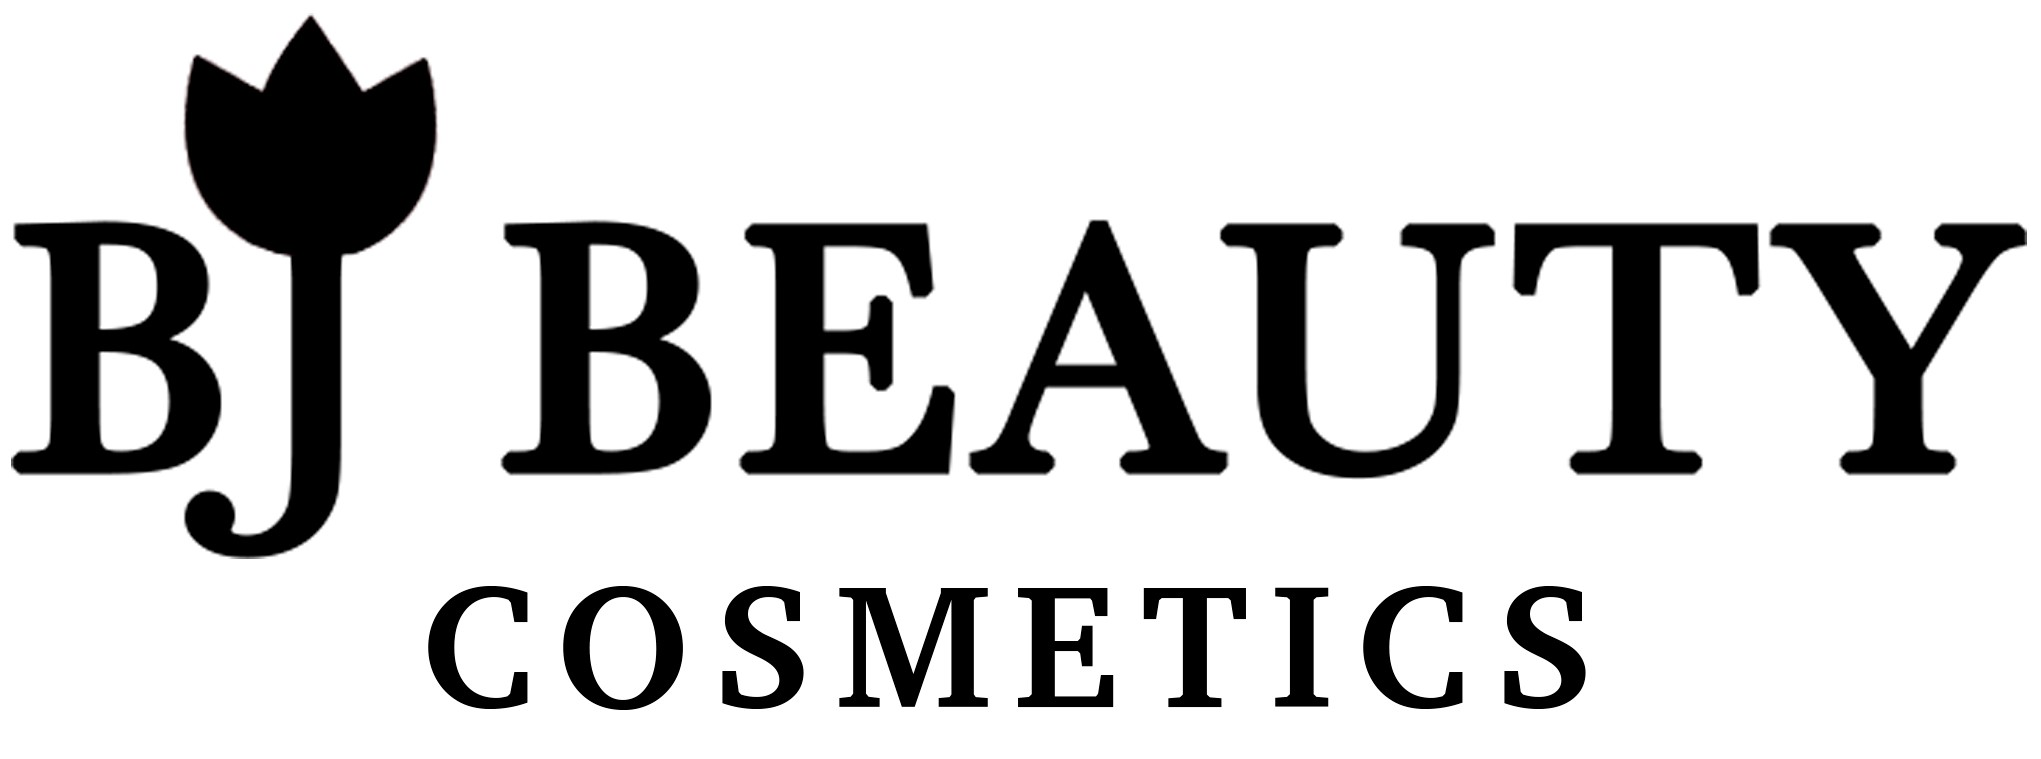 BJ beauty Cosmetics